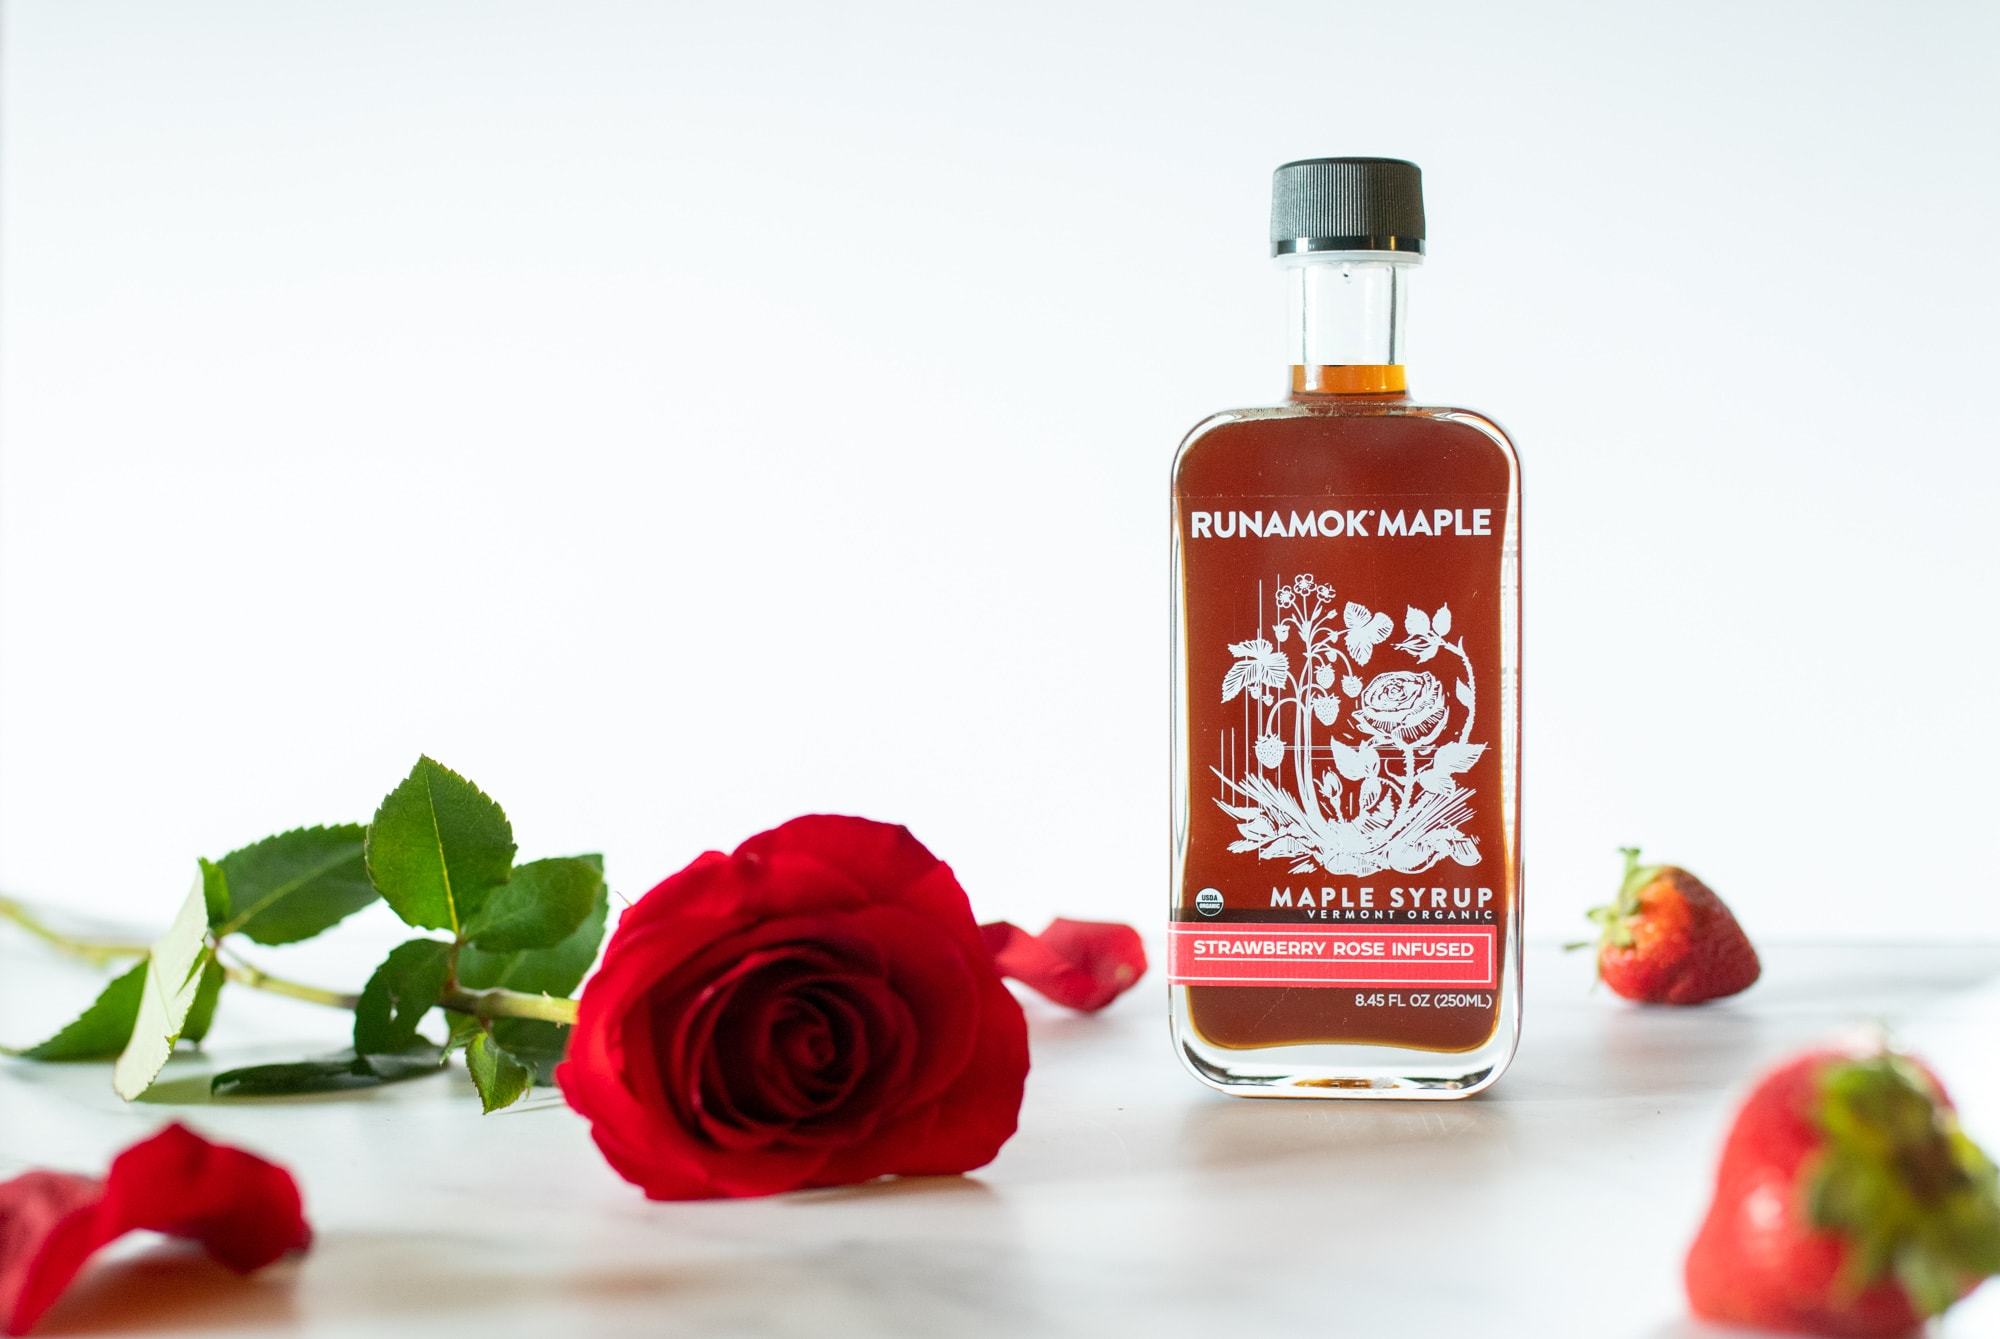 Strawberry Rose Infused Maple Syrup